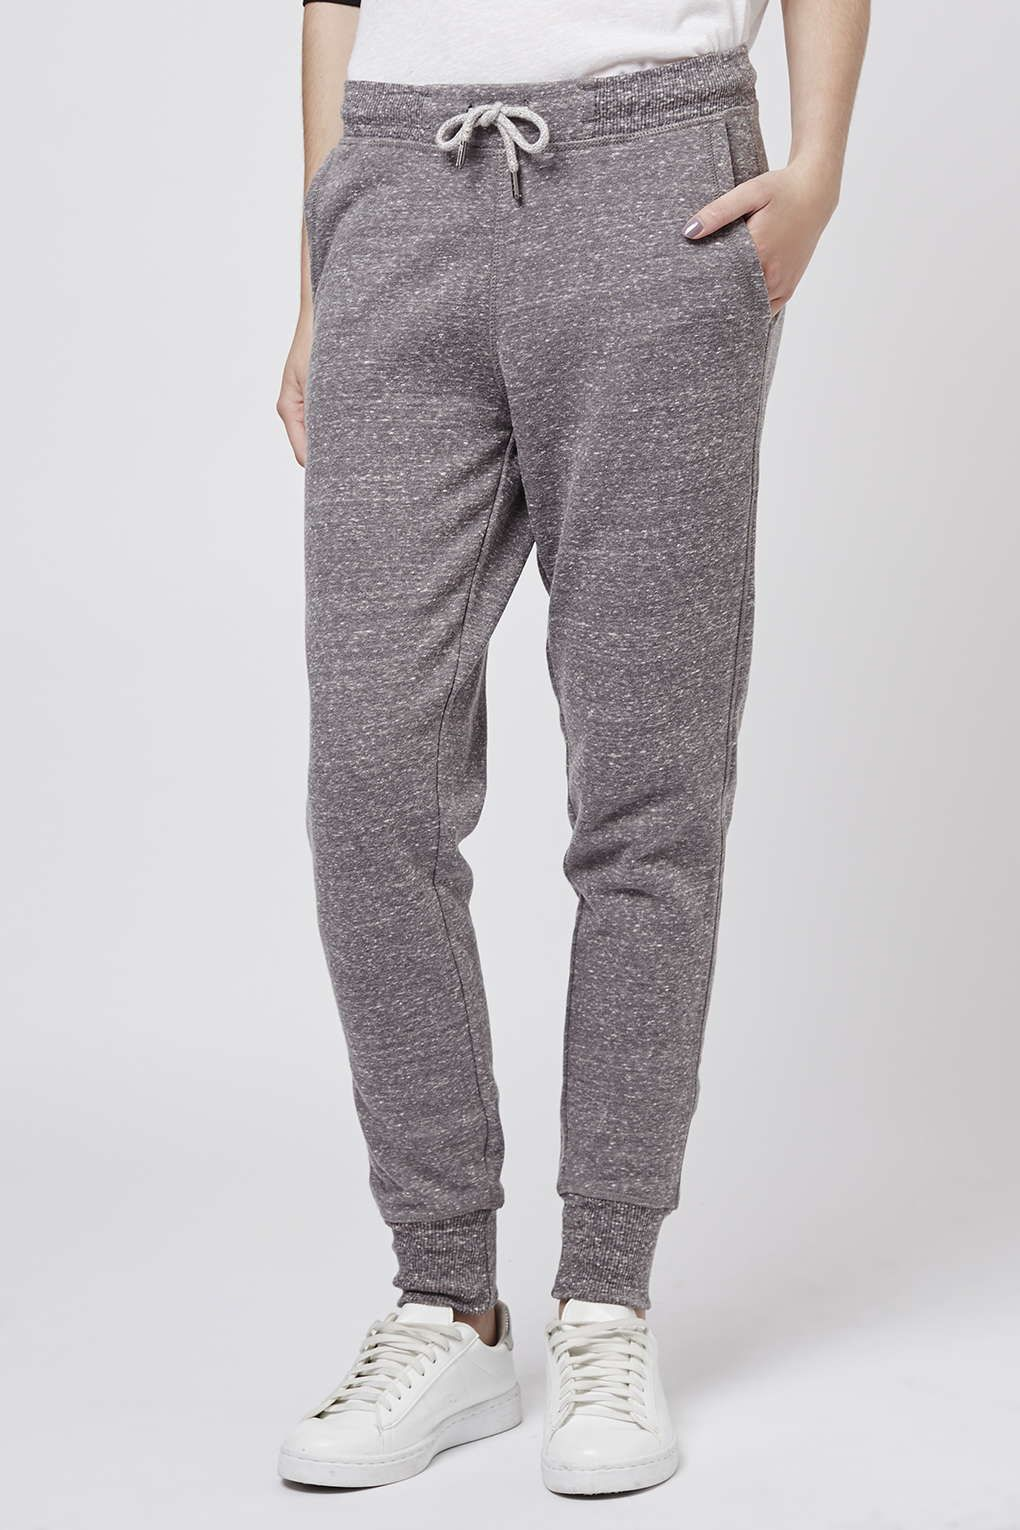 Flecked Skinny Fit Joggers - Topshop